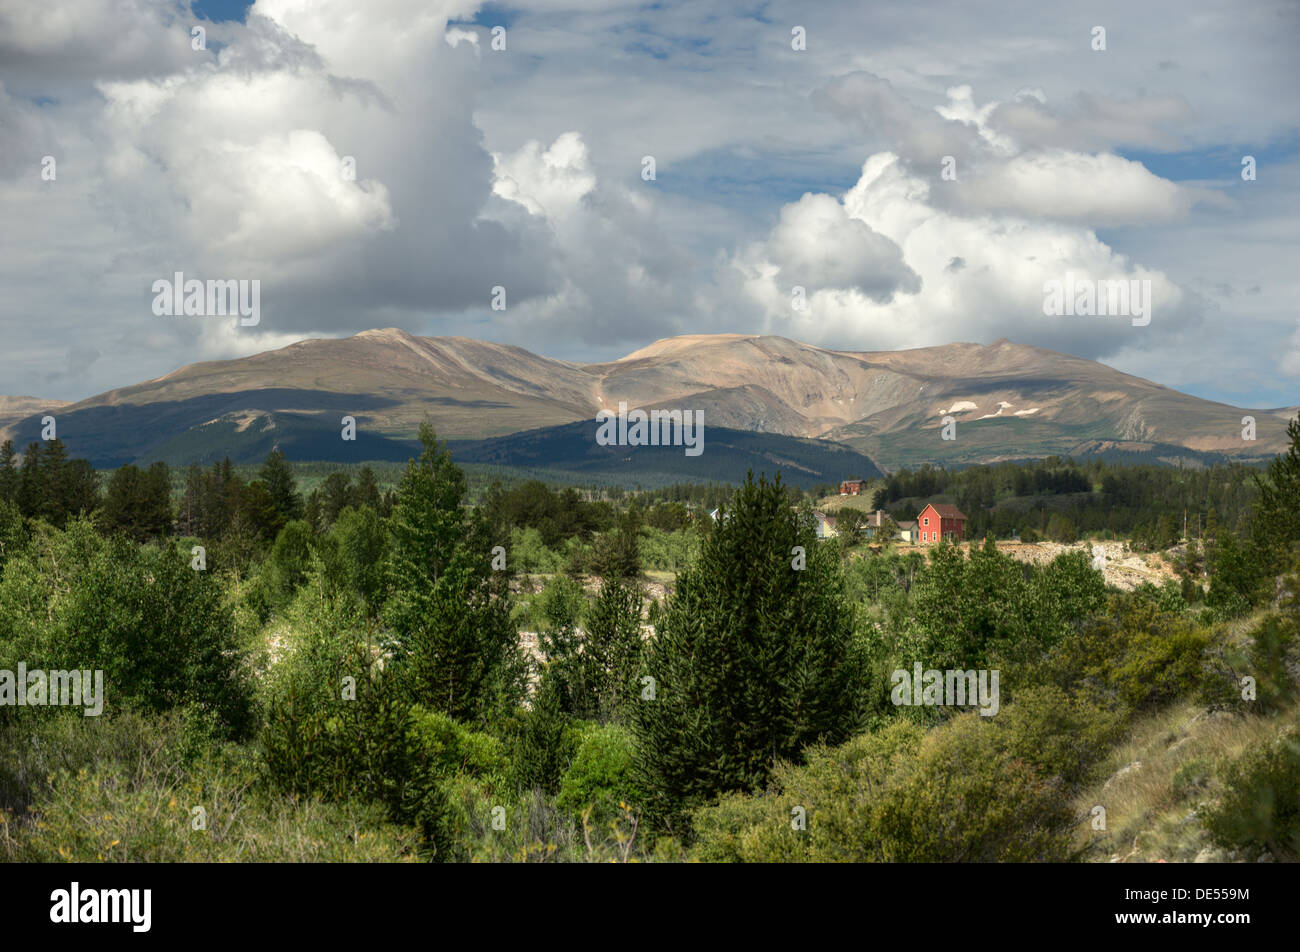 Mount Sherman (14,036 feet), in the Mosquito Range, stands watch over the town of Fairplay, Colorado in South Park. - Stock Image